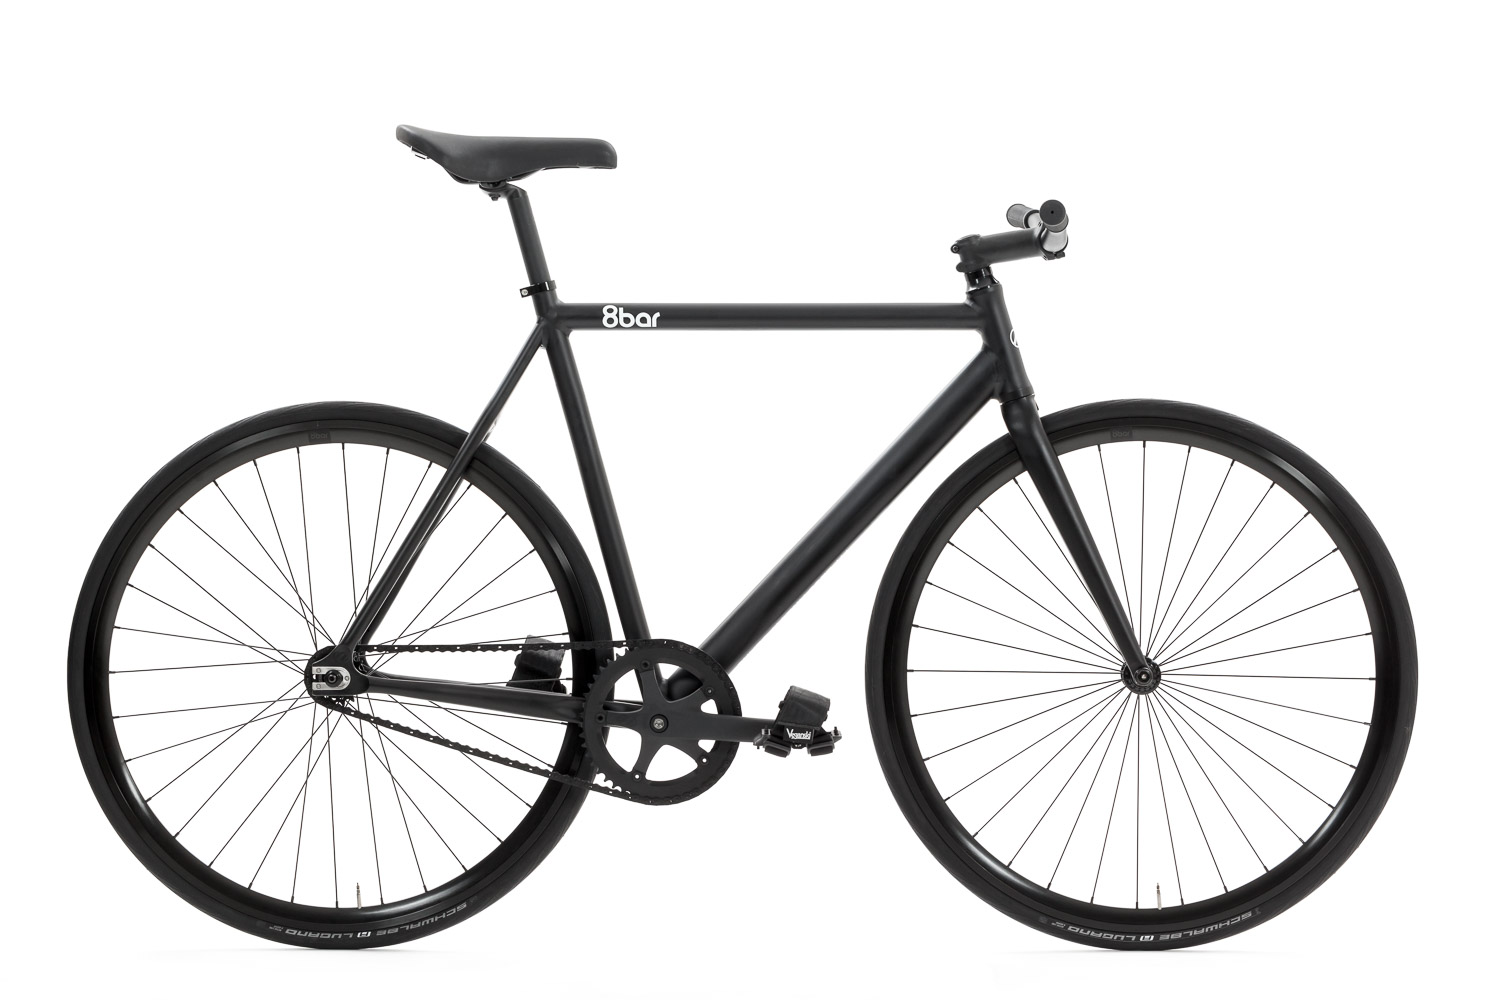 8bar-fhain-comp-black-riser-fixie-fixed-gear-1